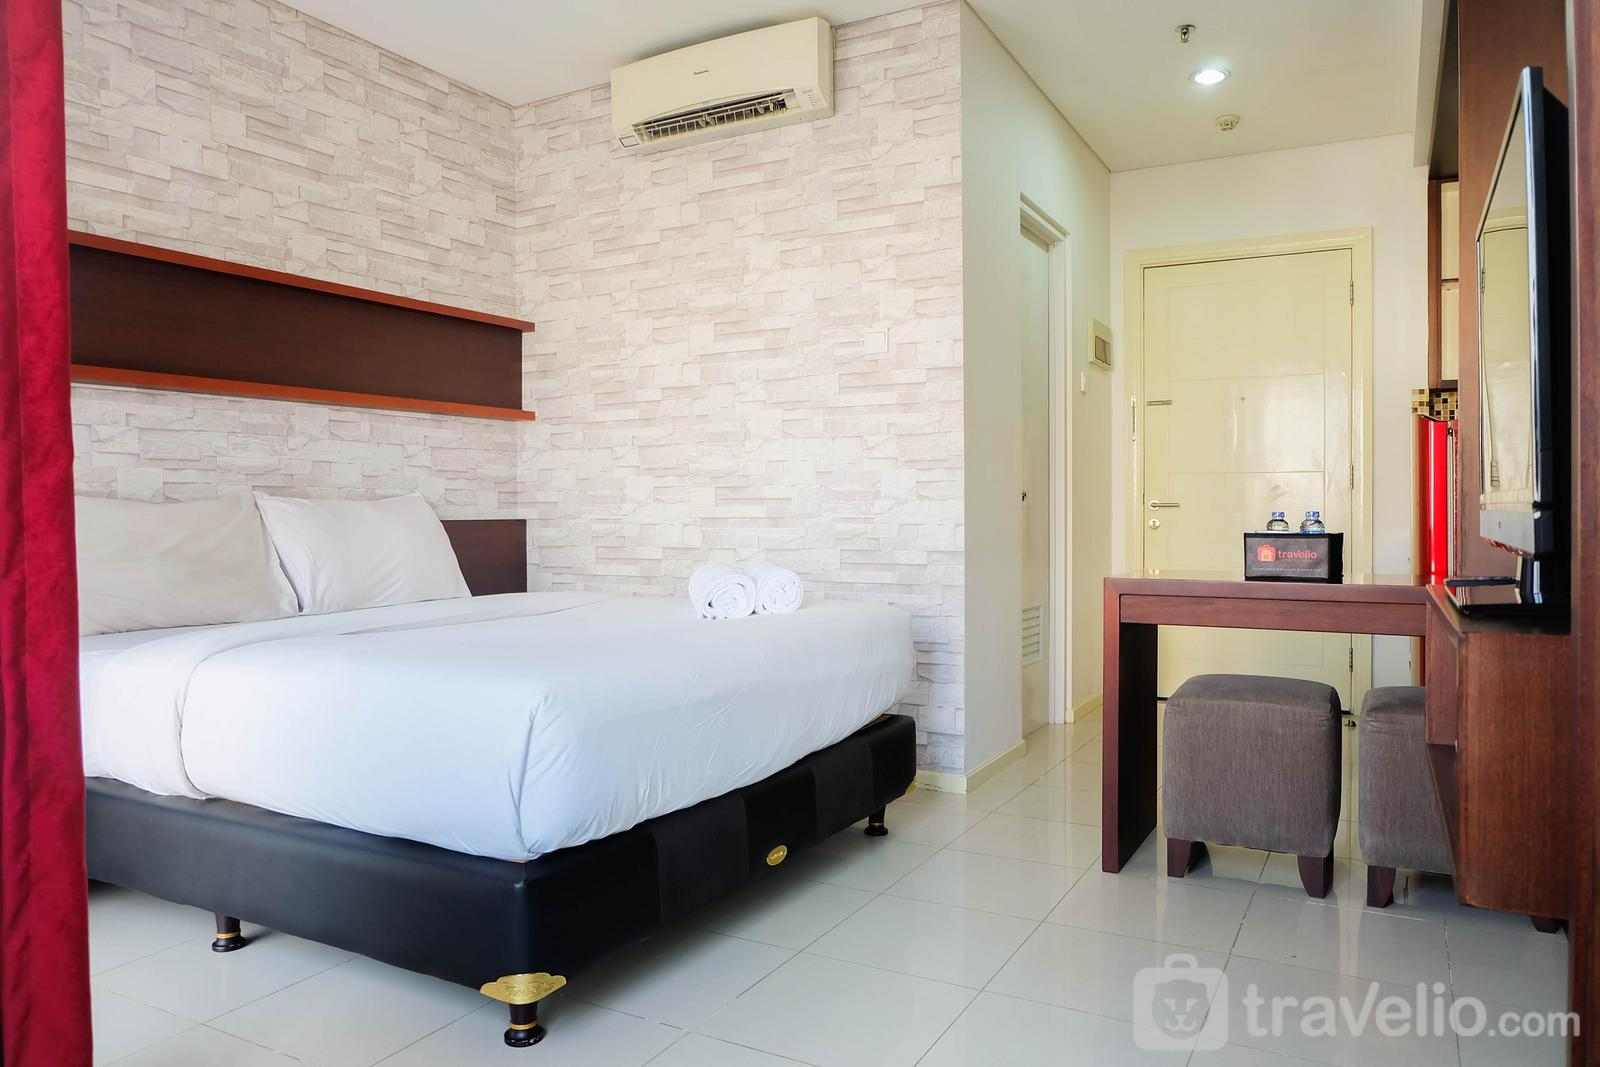 Cosmo Terrace Thamrin - Comfy Studio Cosmo Terrace Apartment By Travelio